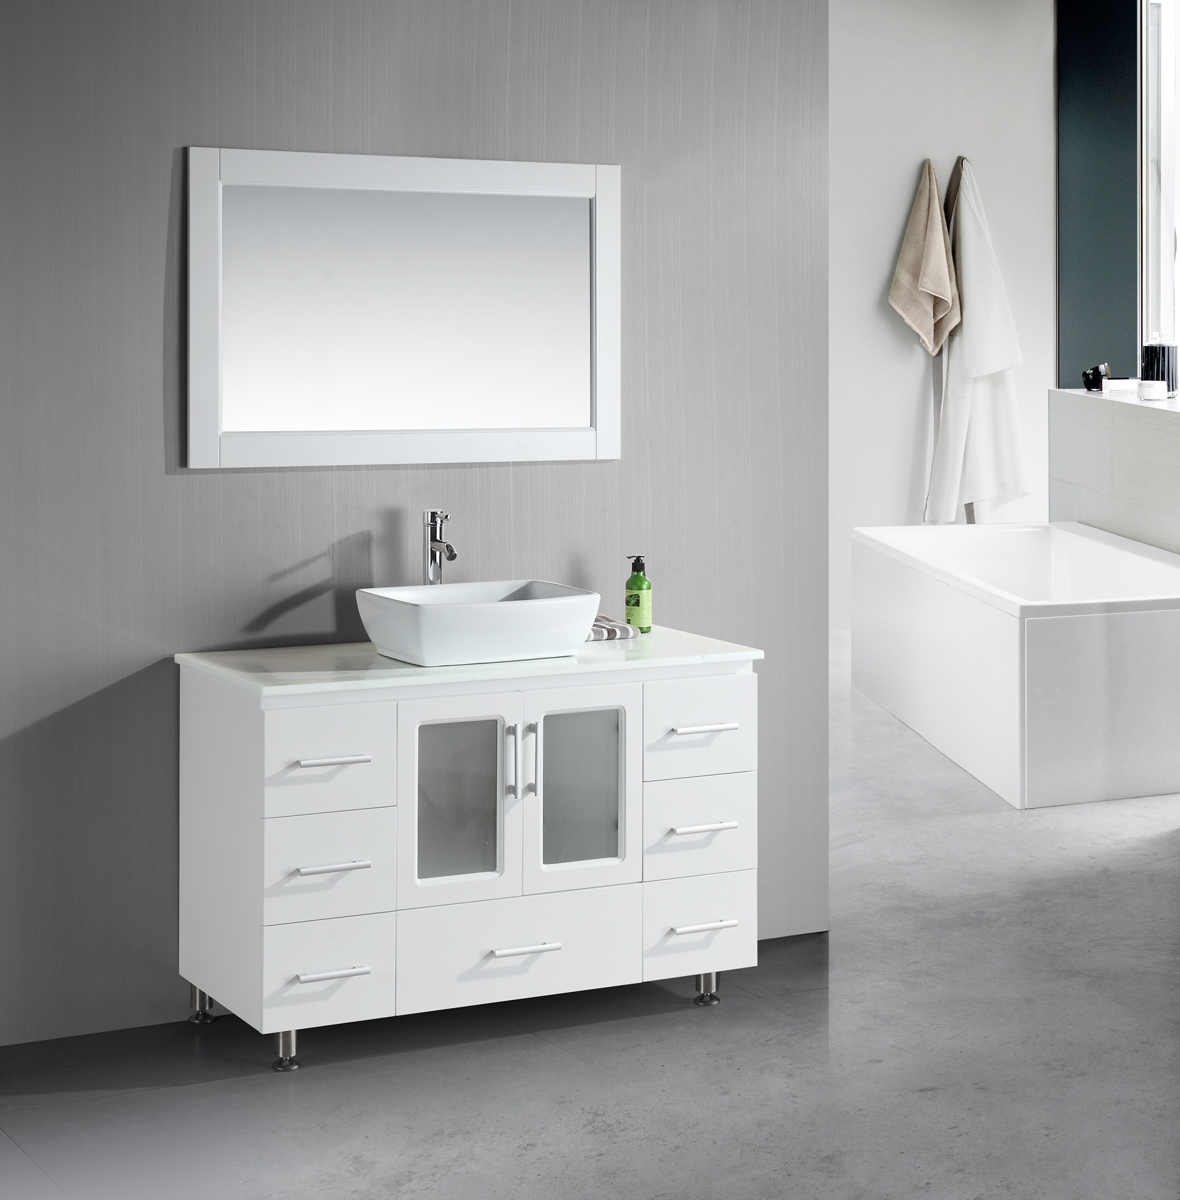 Stanton 48 Inch White Bathroom Vanity Porcelain Vessel Sink In Contemporary White Mirror (View 9 of 15)